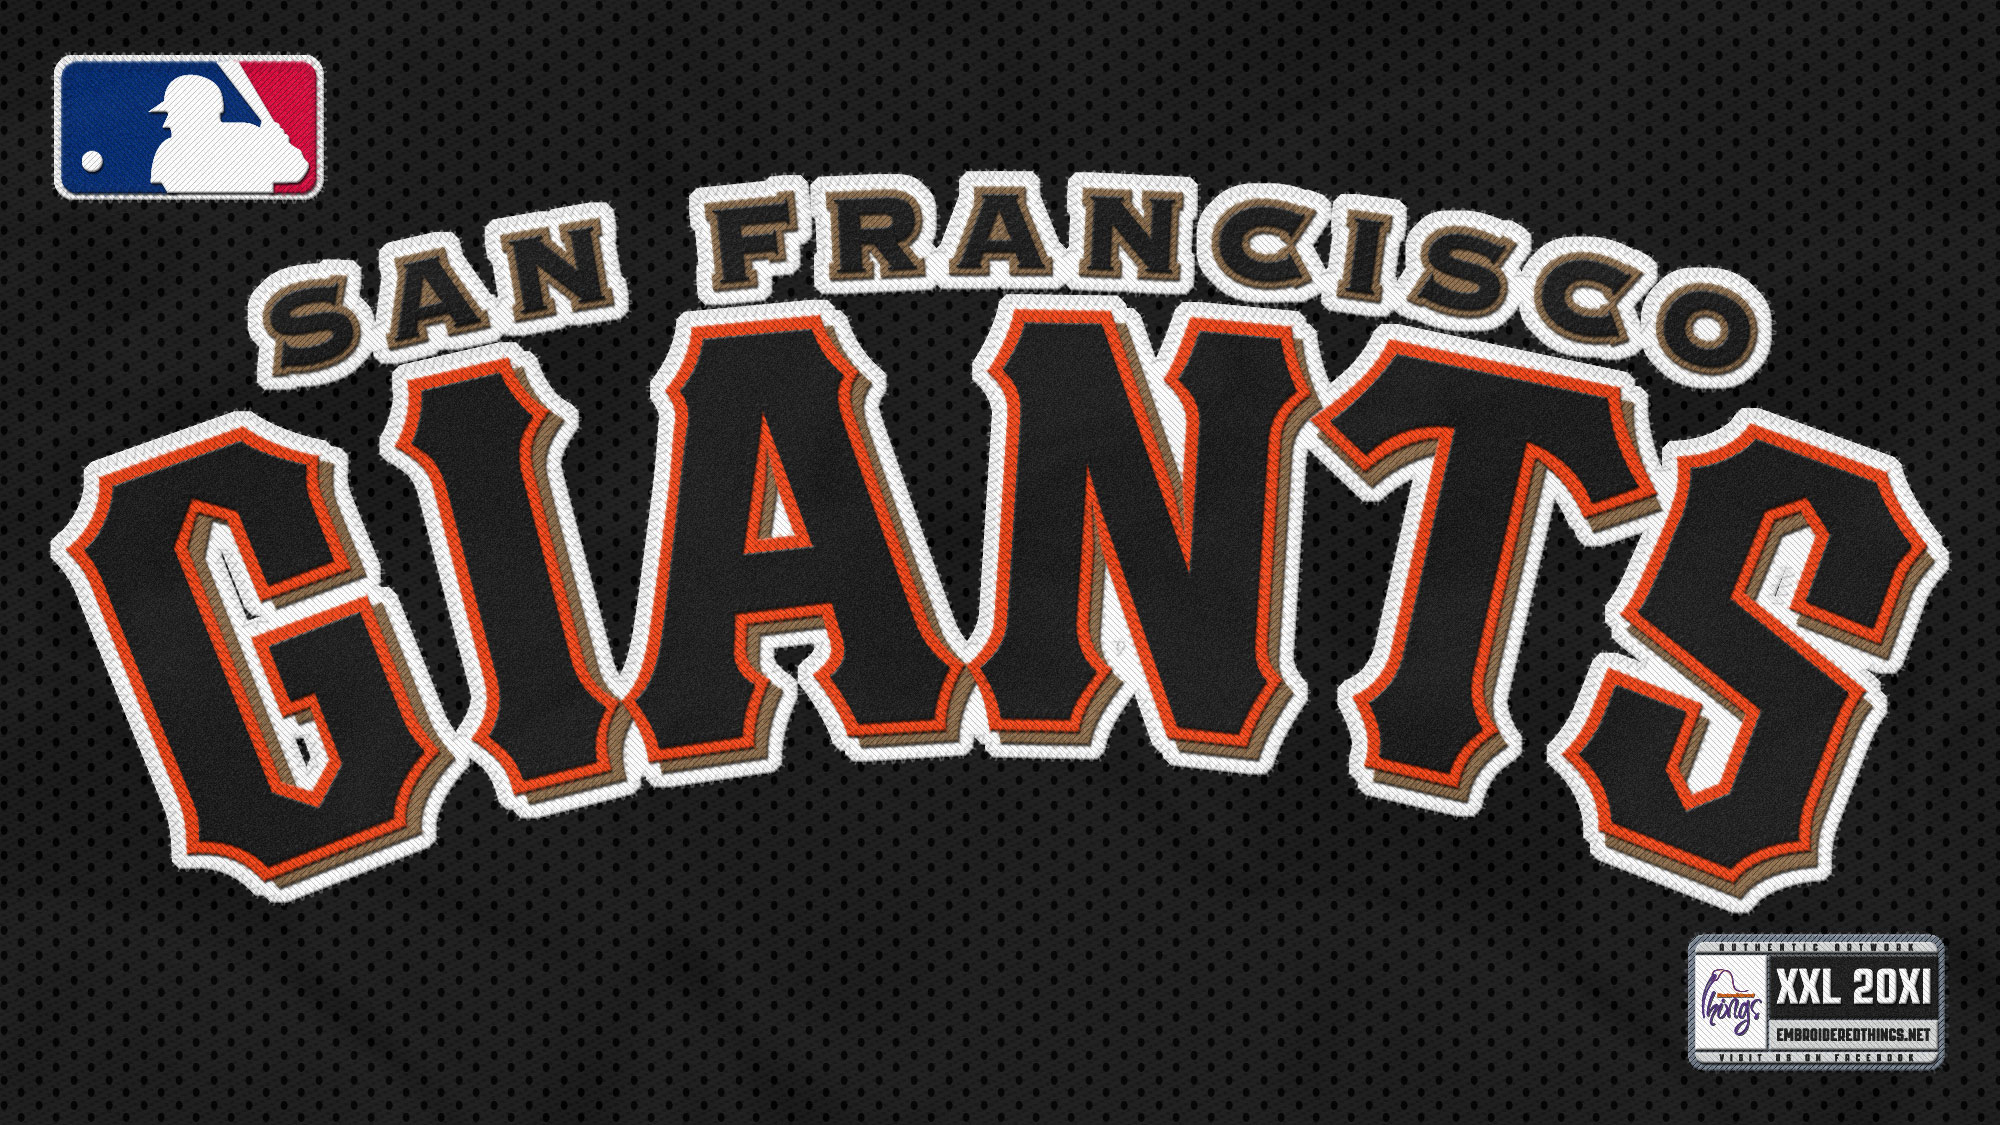 San Francisco Giants HD Wallpaper